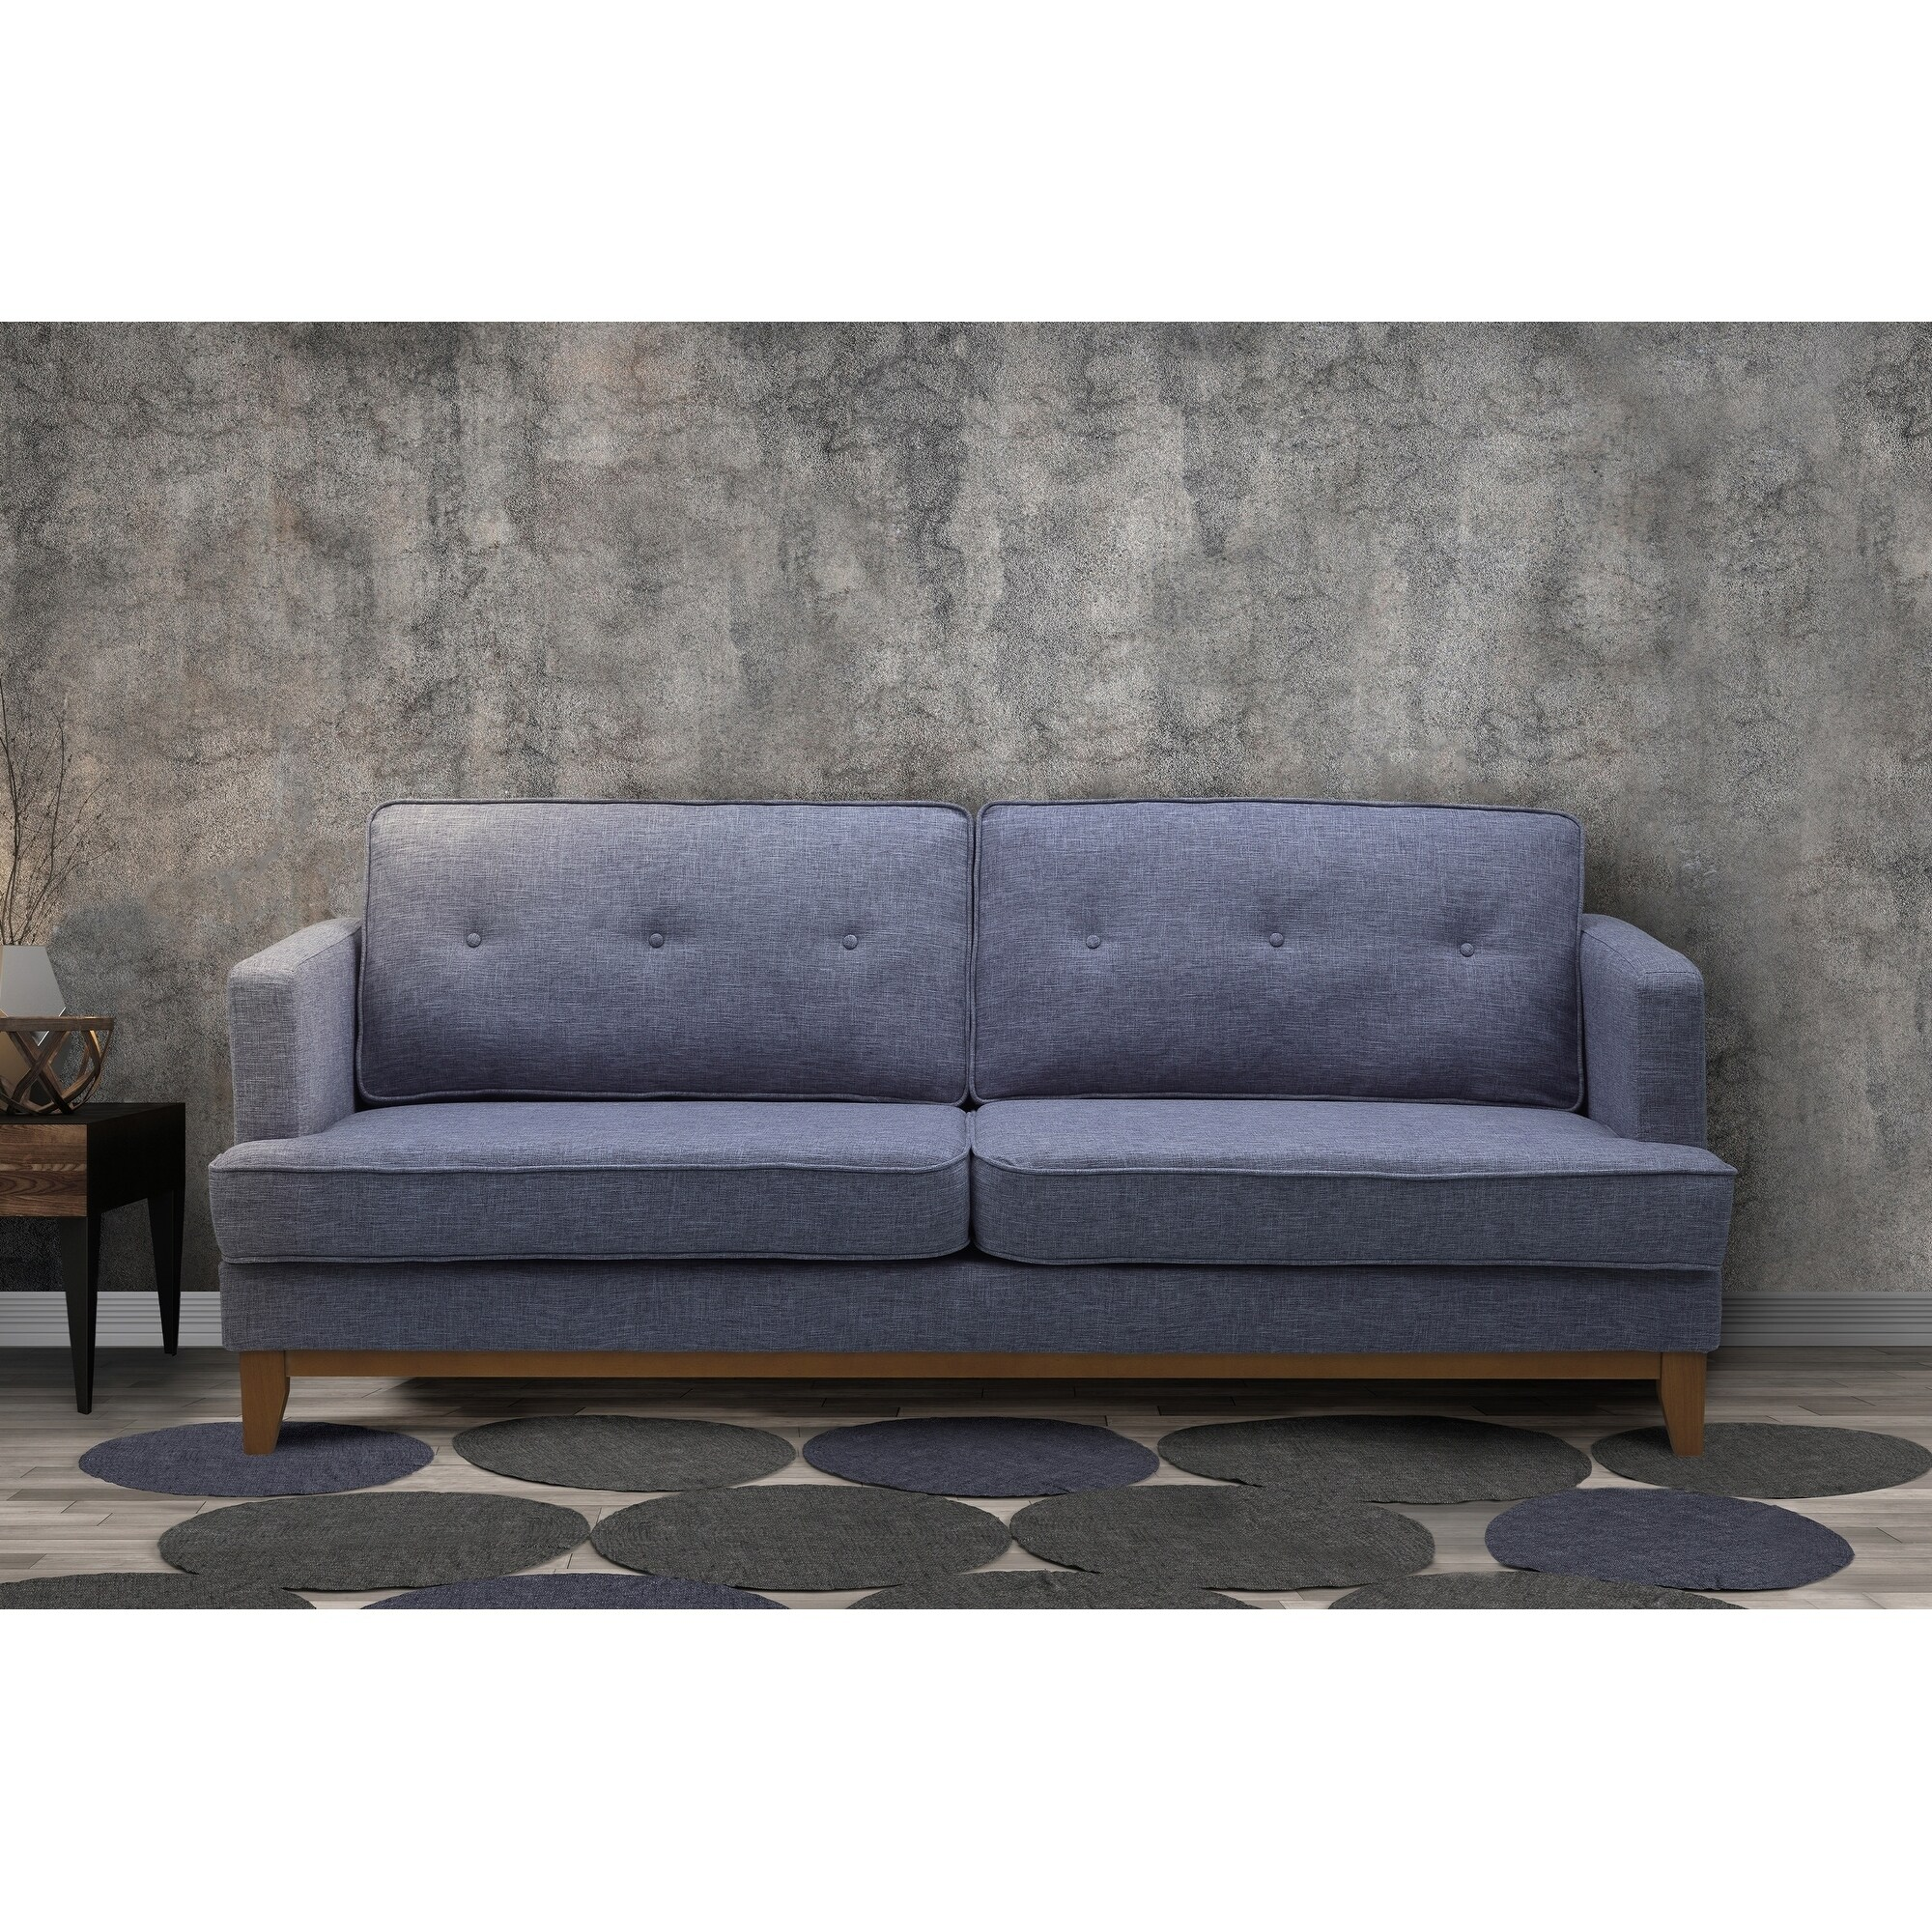 Coronado Mid Century Tufted Sofa In Champagne Finish With Washed Gray Fabric